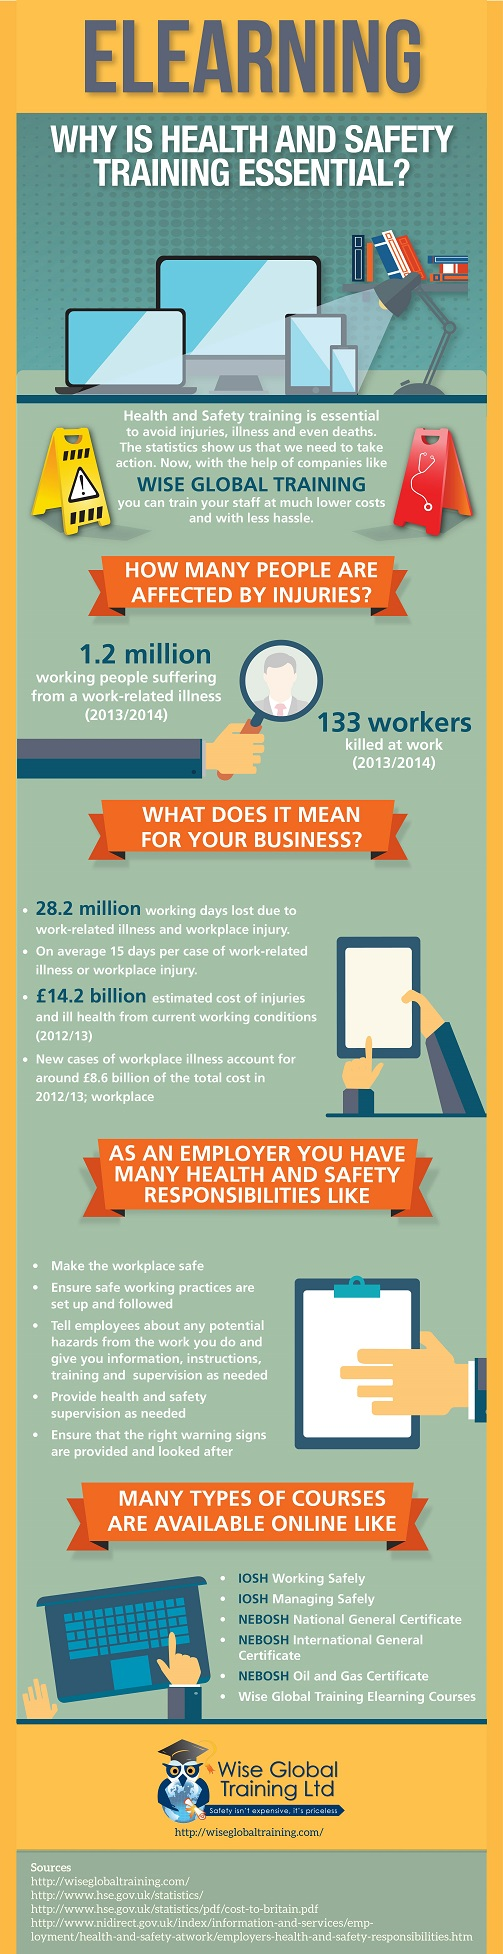 health and safety online, nebosh online